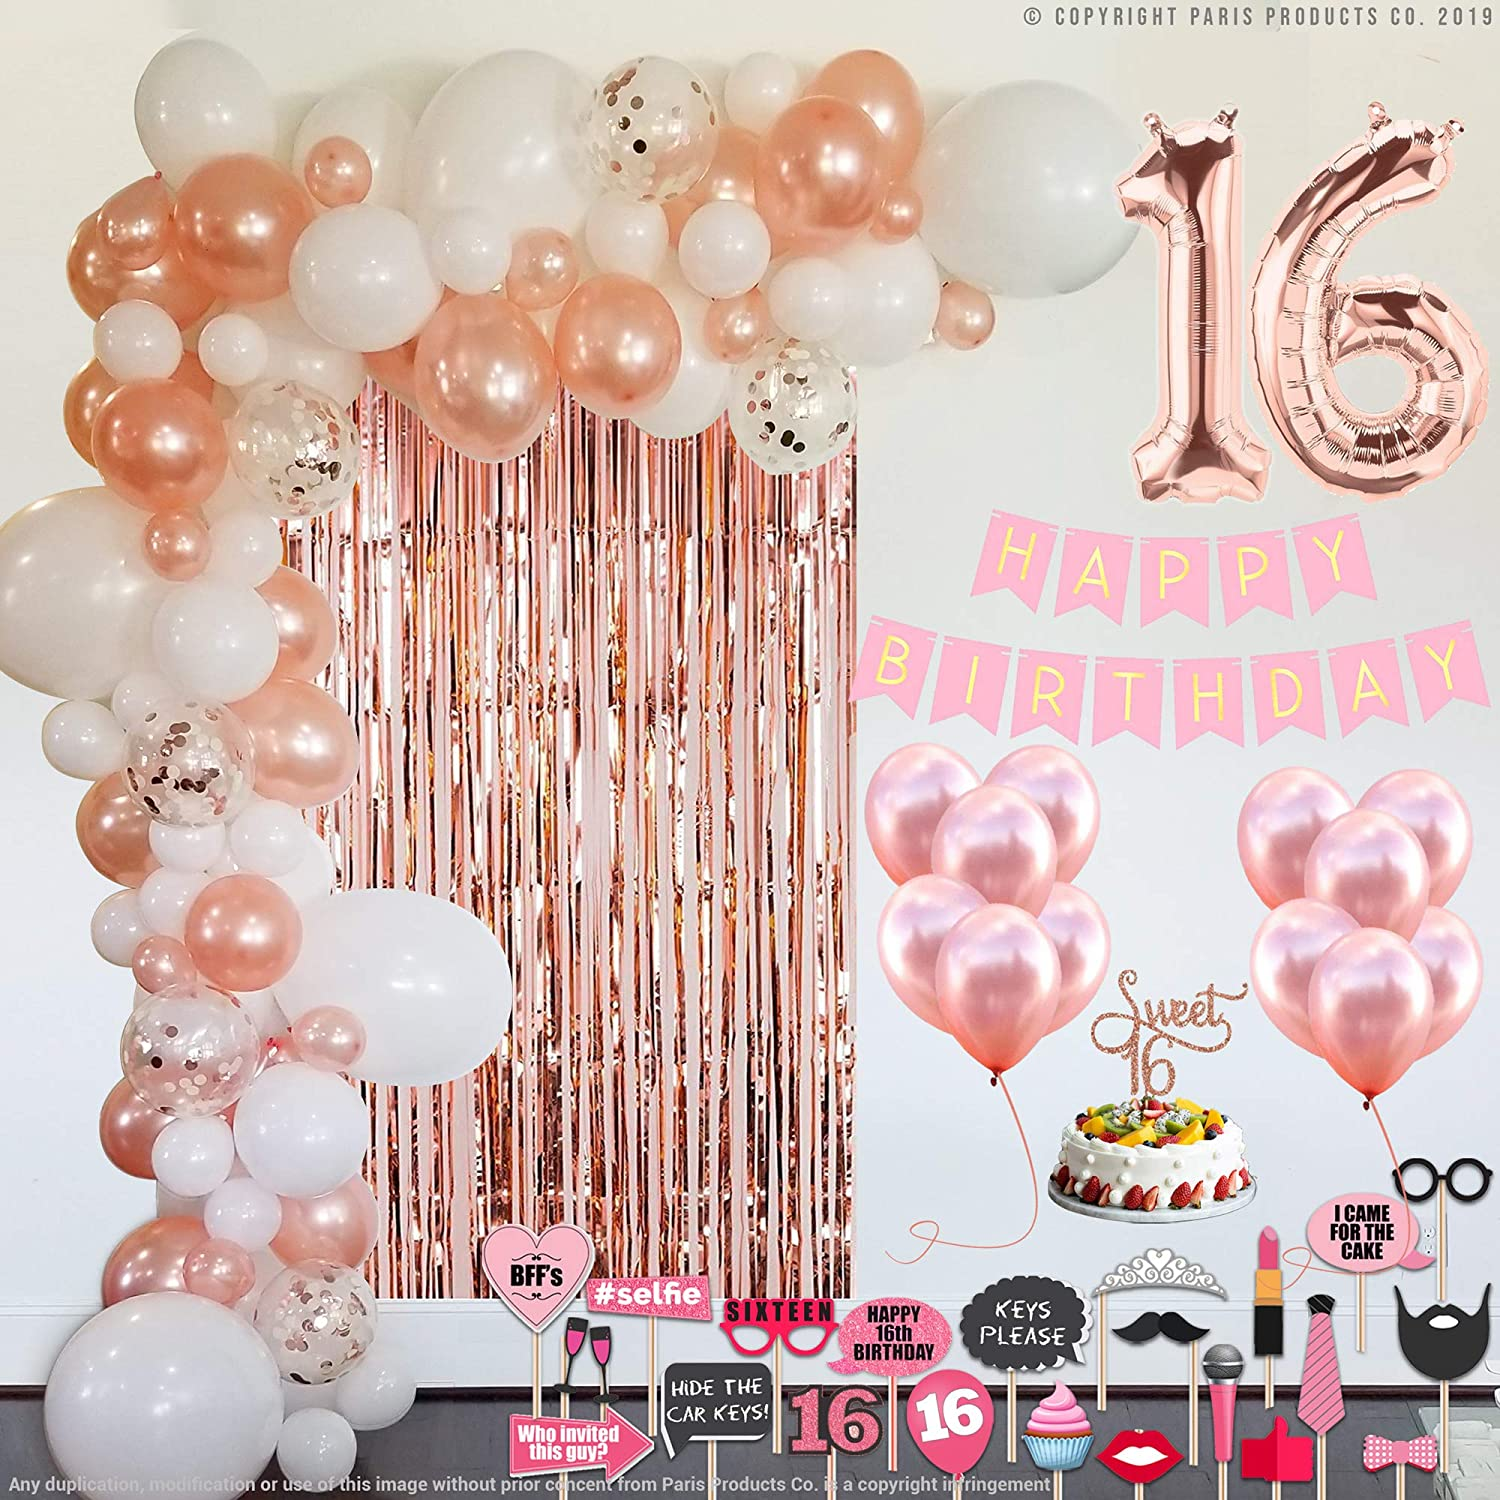 Sweet 16 Sixteen Birthday Party Supplies Decorations 16 Year Old Birthday Party Decorations 16th Happy Birthday Banner Balloons Numbers 16th Birthday Decorations Rose Gold And Silver for Girls Boys